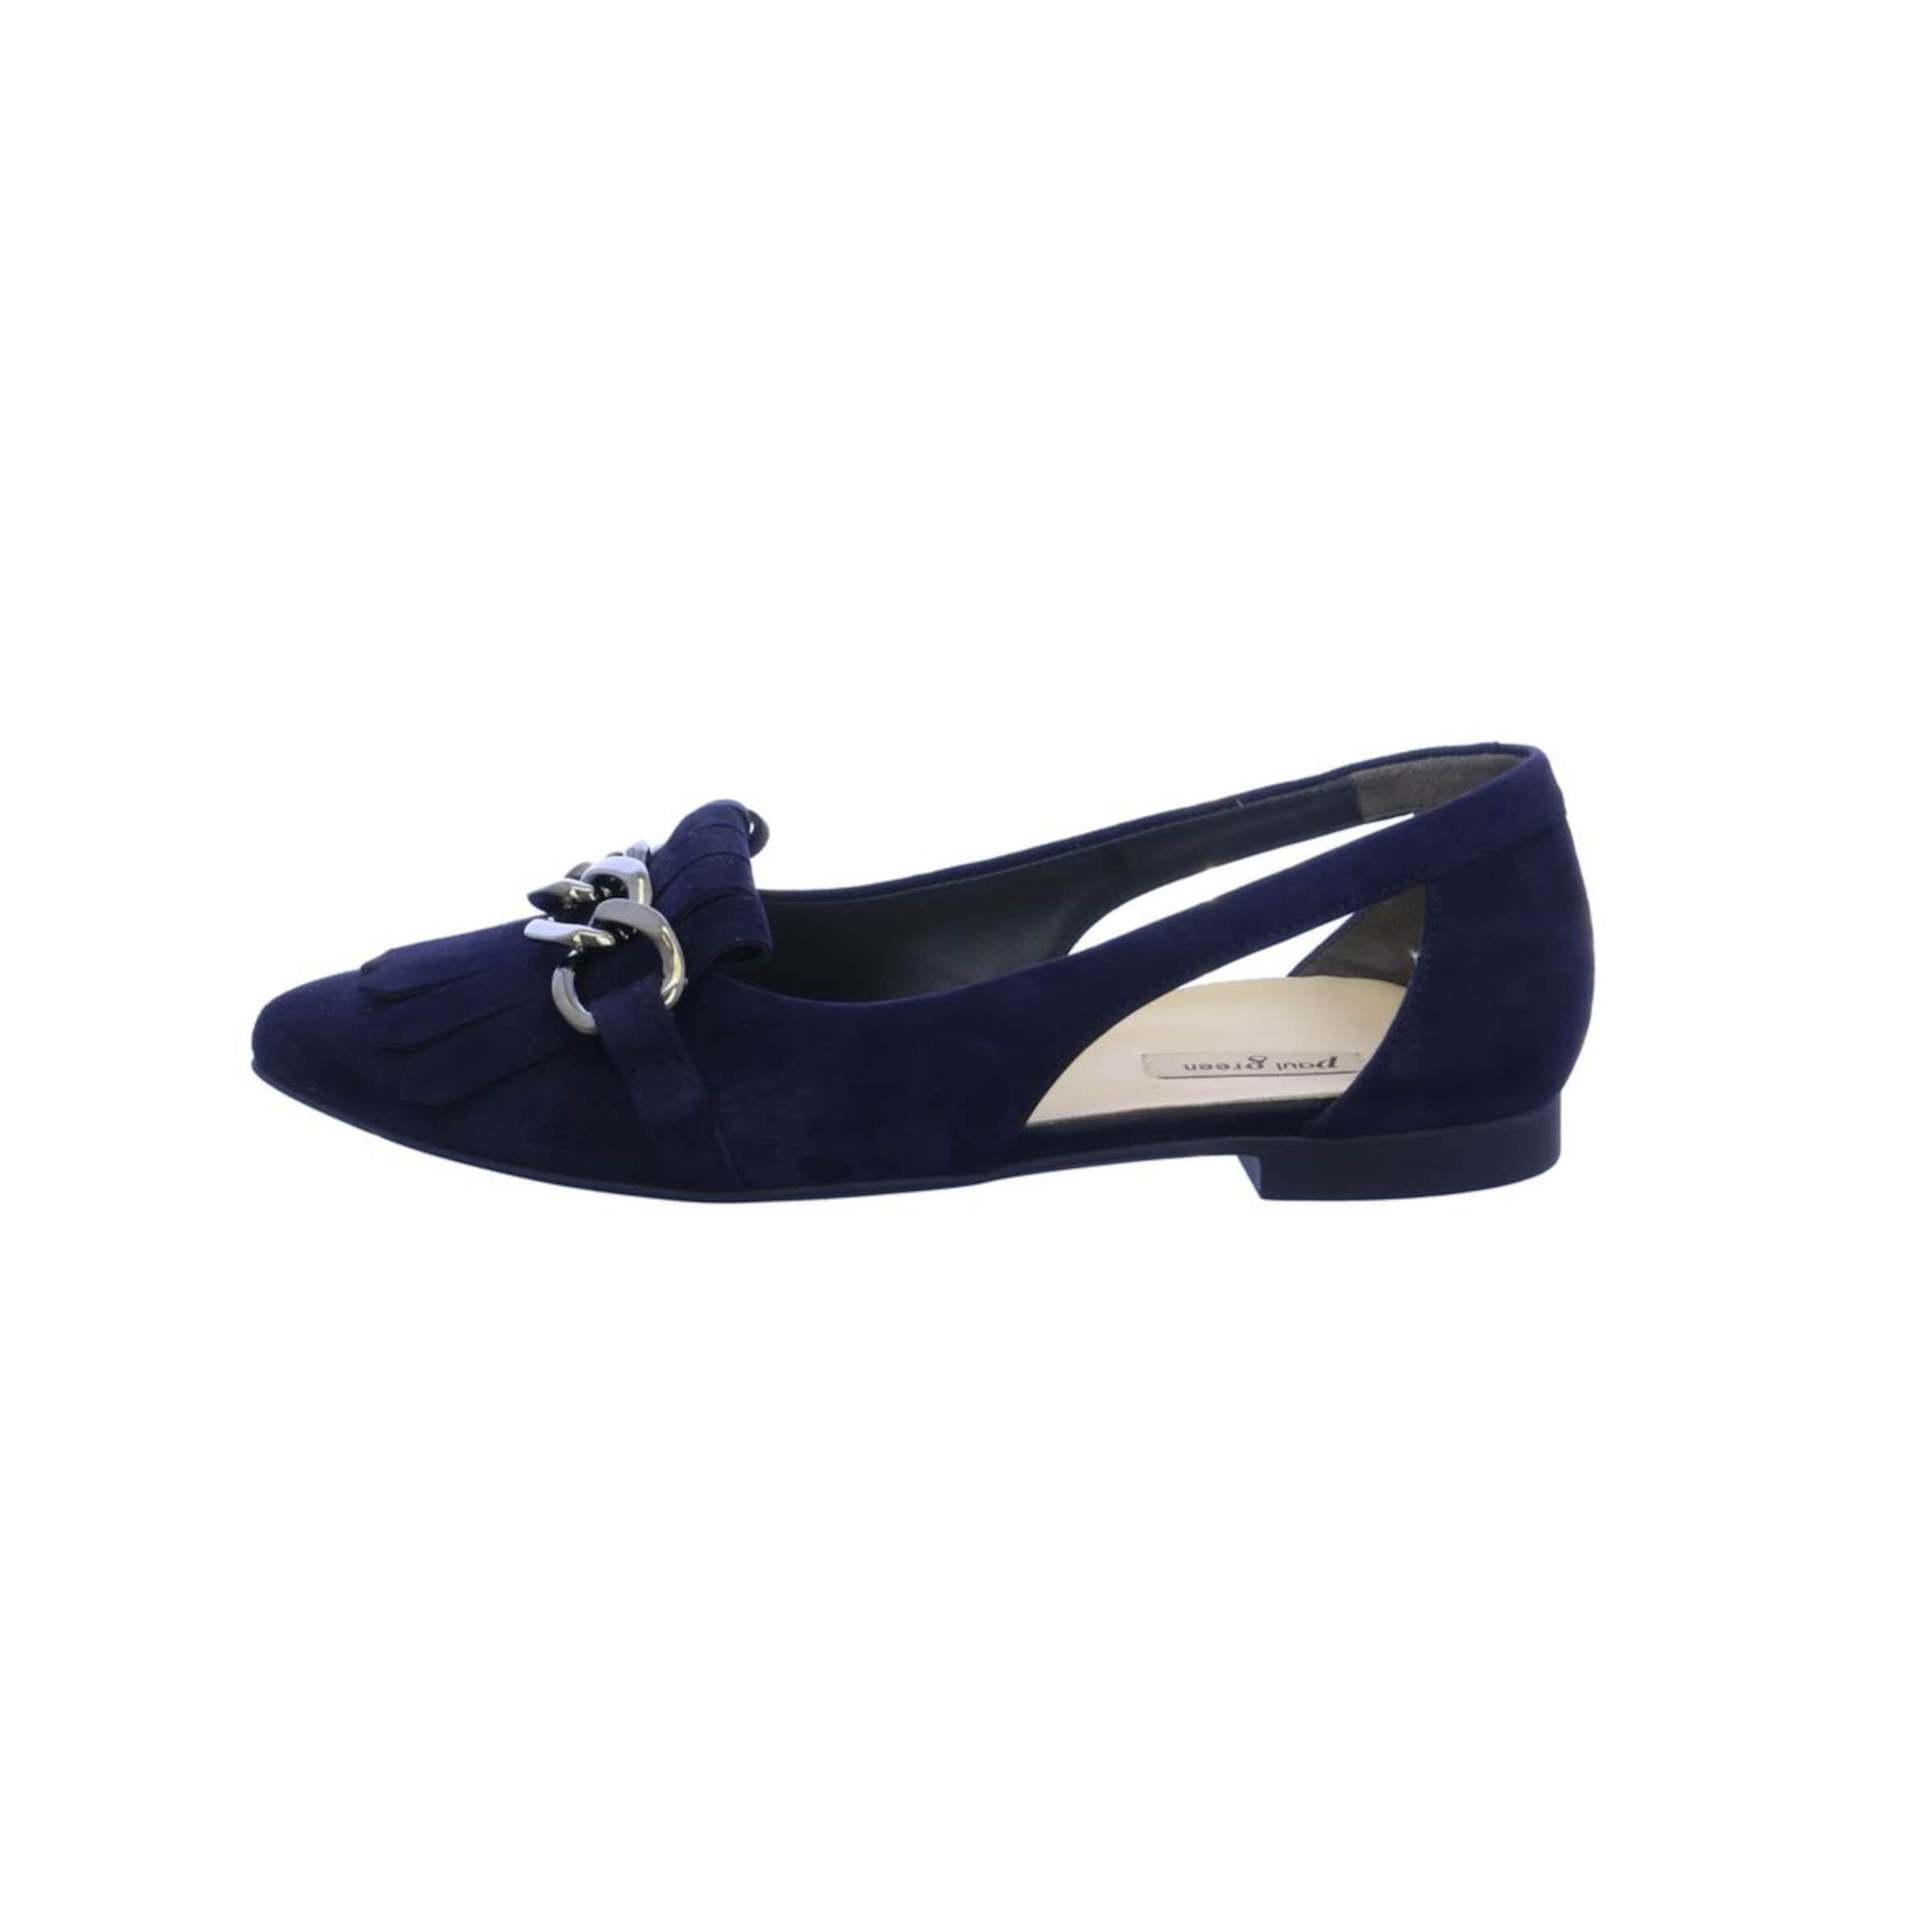 Ballerinas Navy Green Paul In zVpMqUS